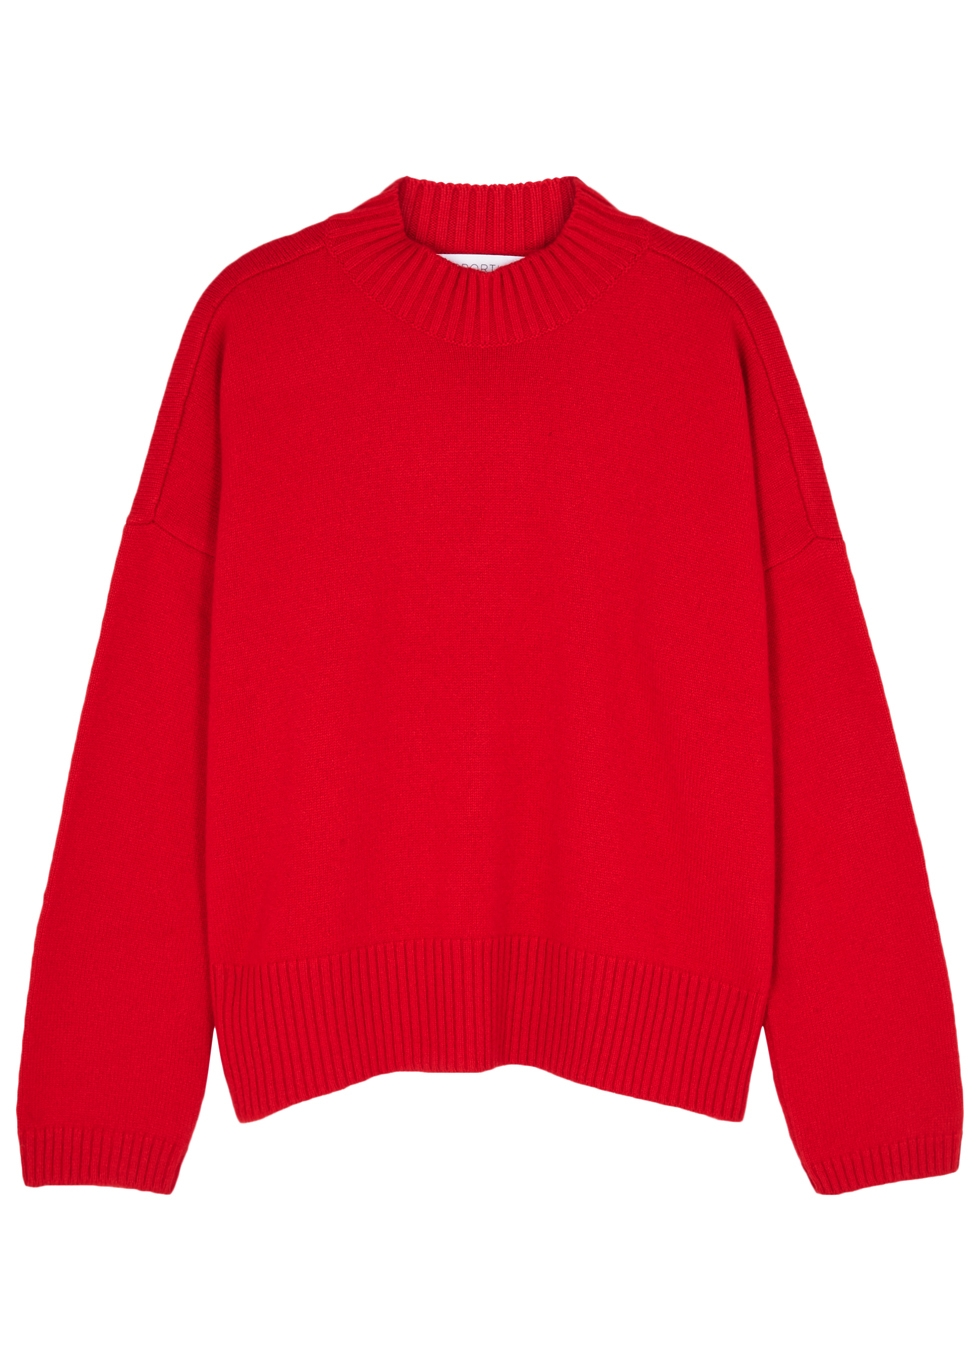 OPPORTUNO Zimra Red Cashmere Jumper